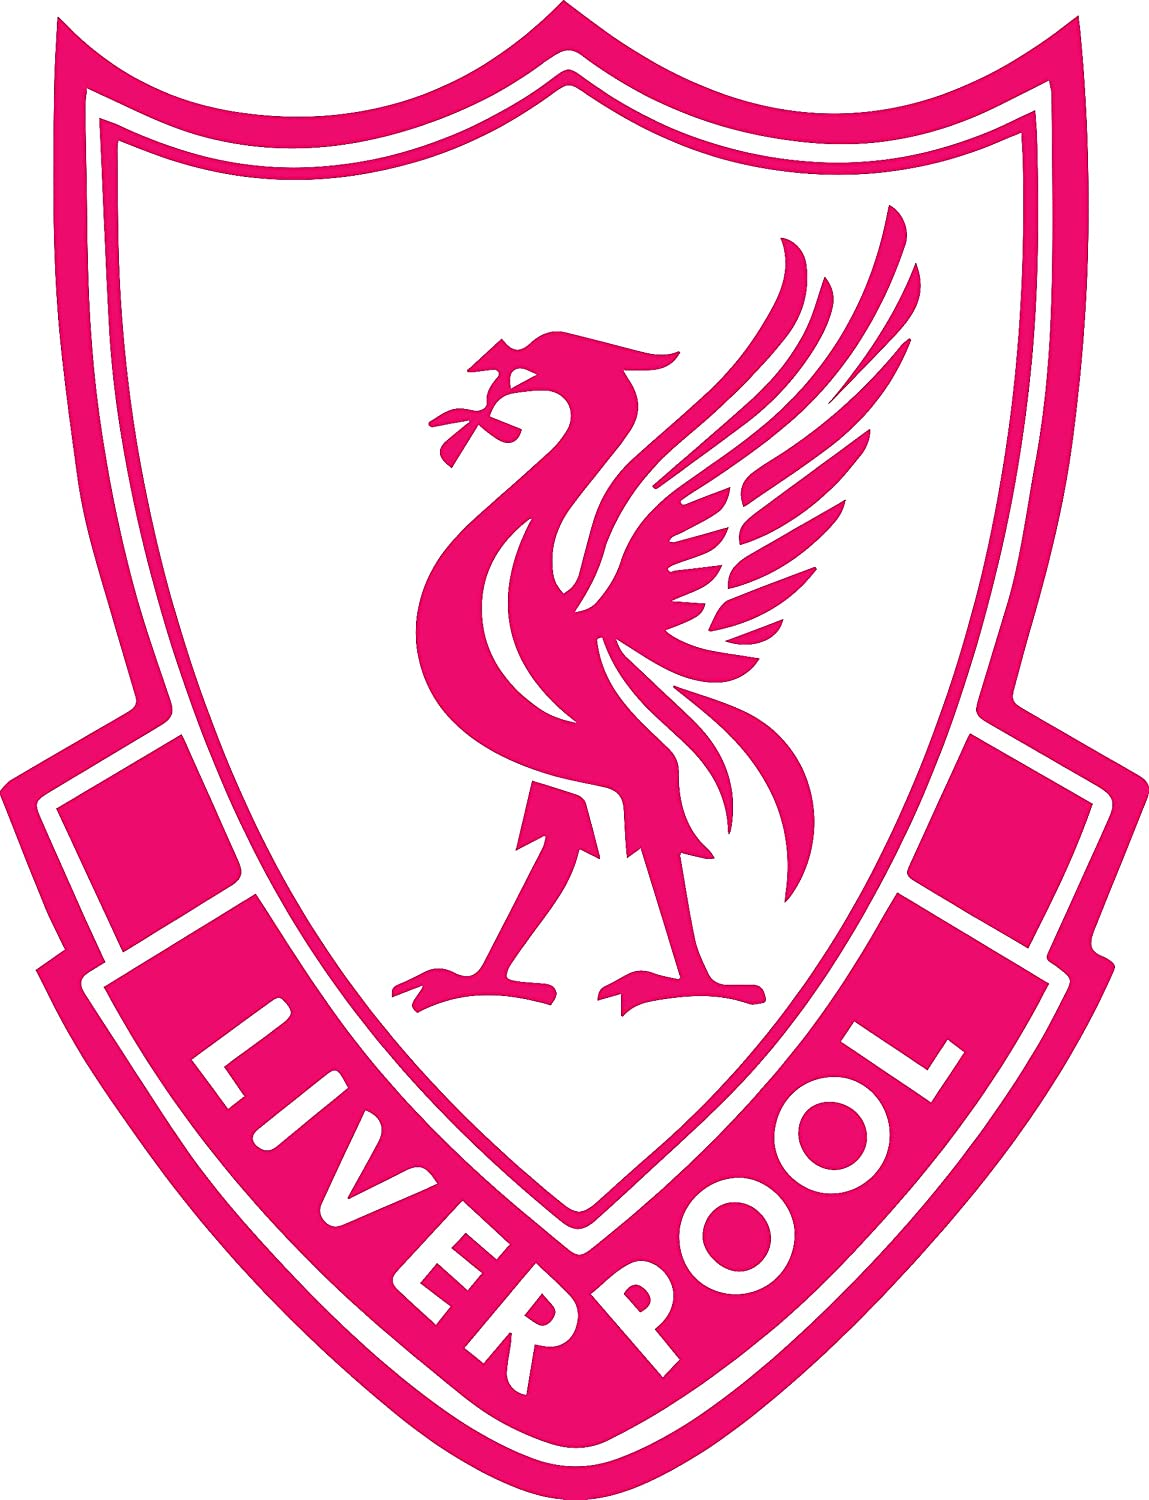 Angdest liverpoll fc liverpool pink set of 2 premium waterproof vinyl decal stickers for laptop phone accessory helmet car window bumper mug tuber cup